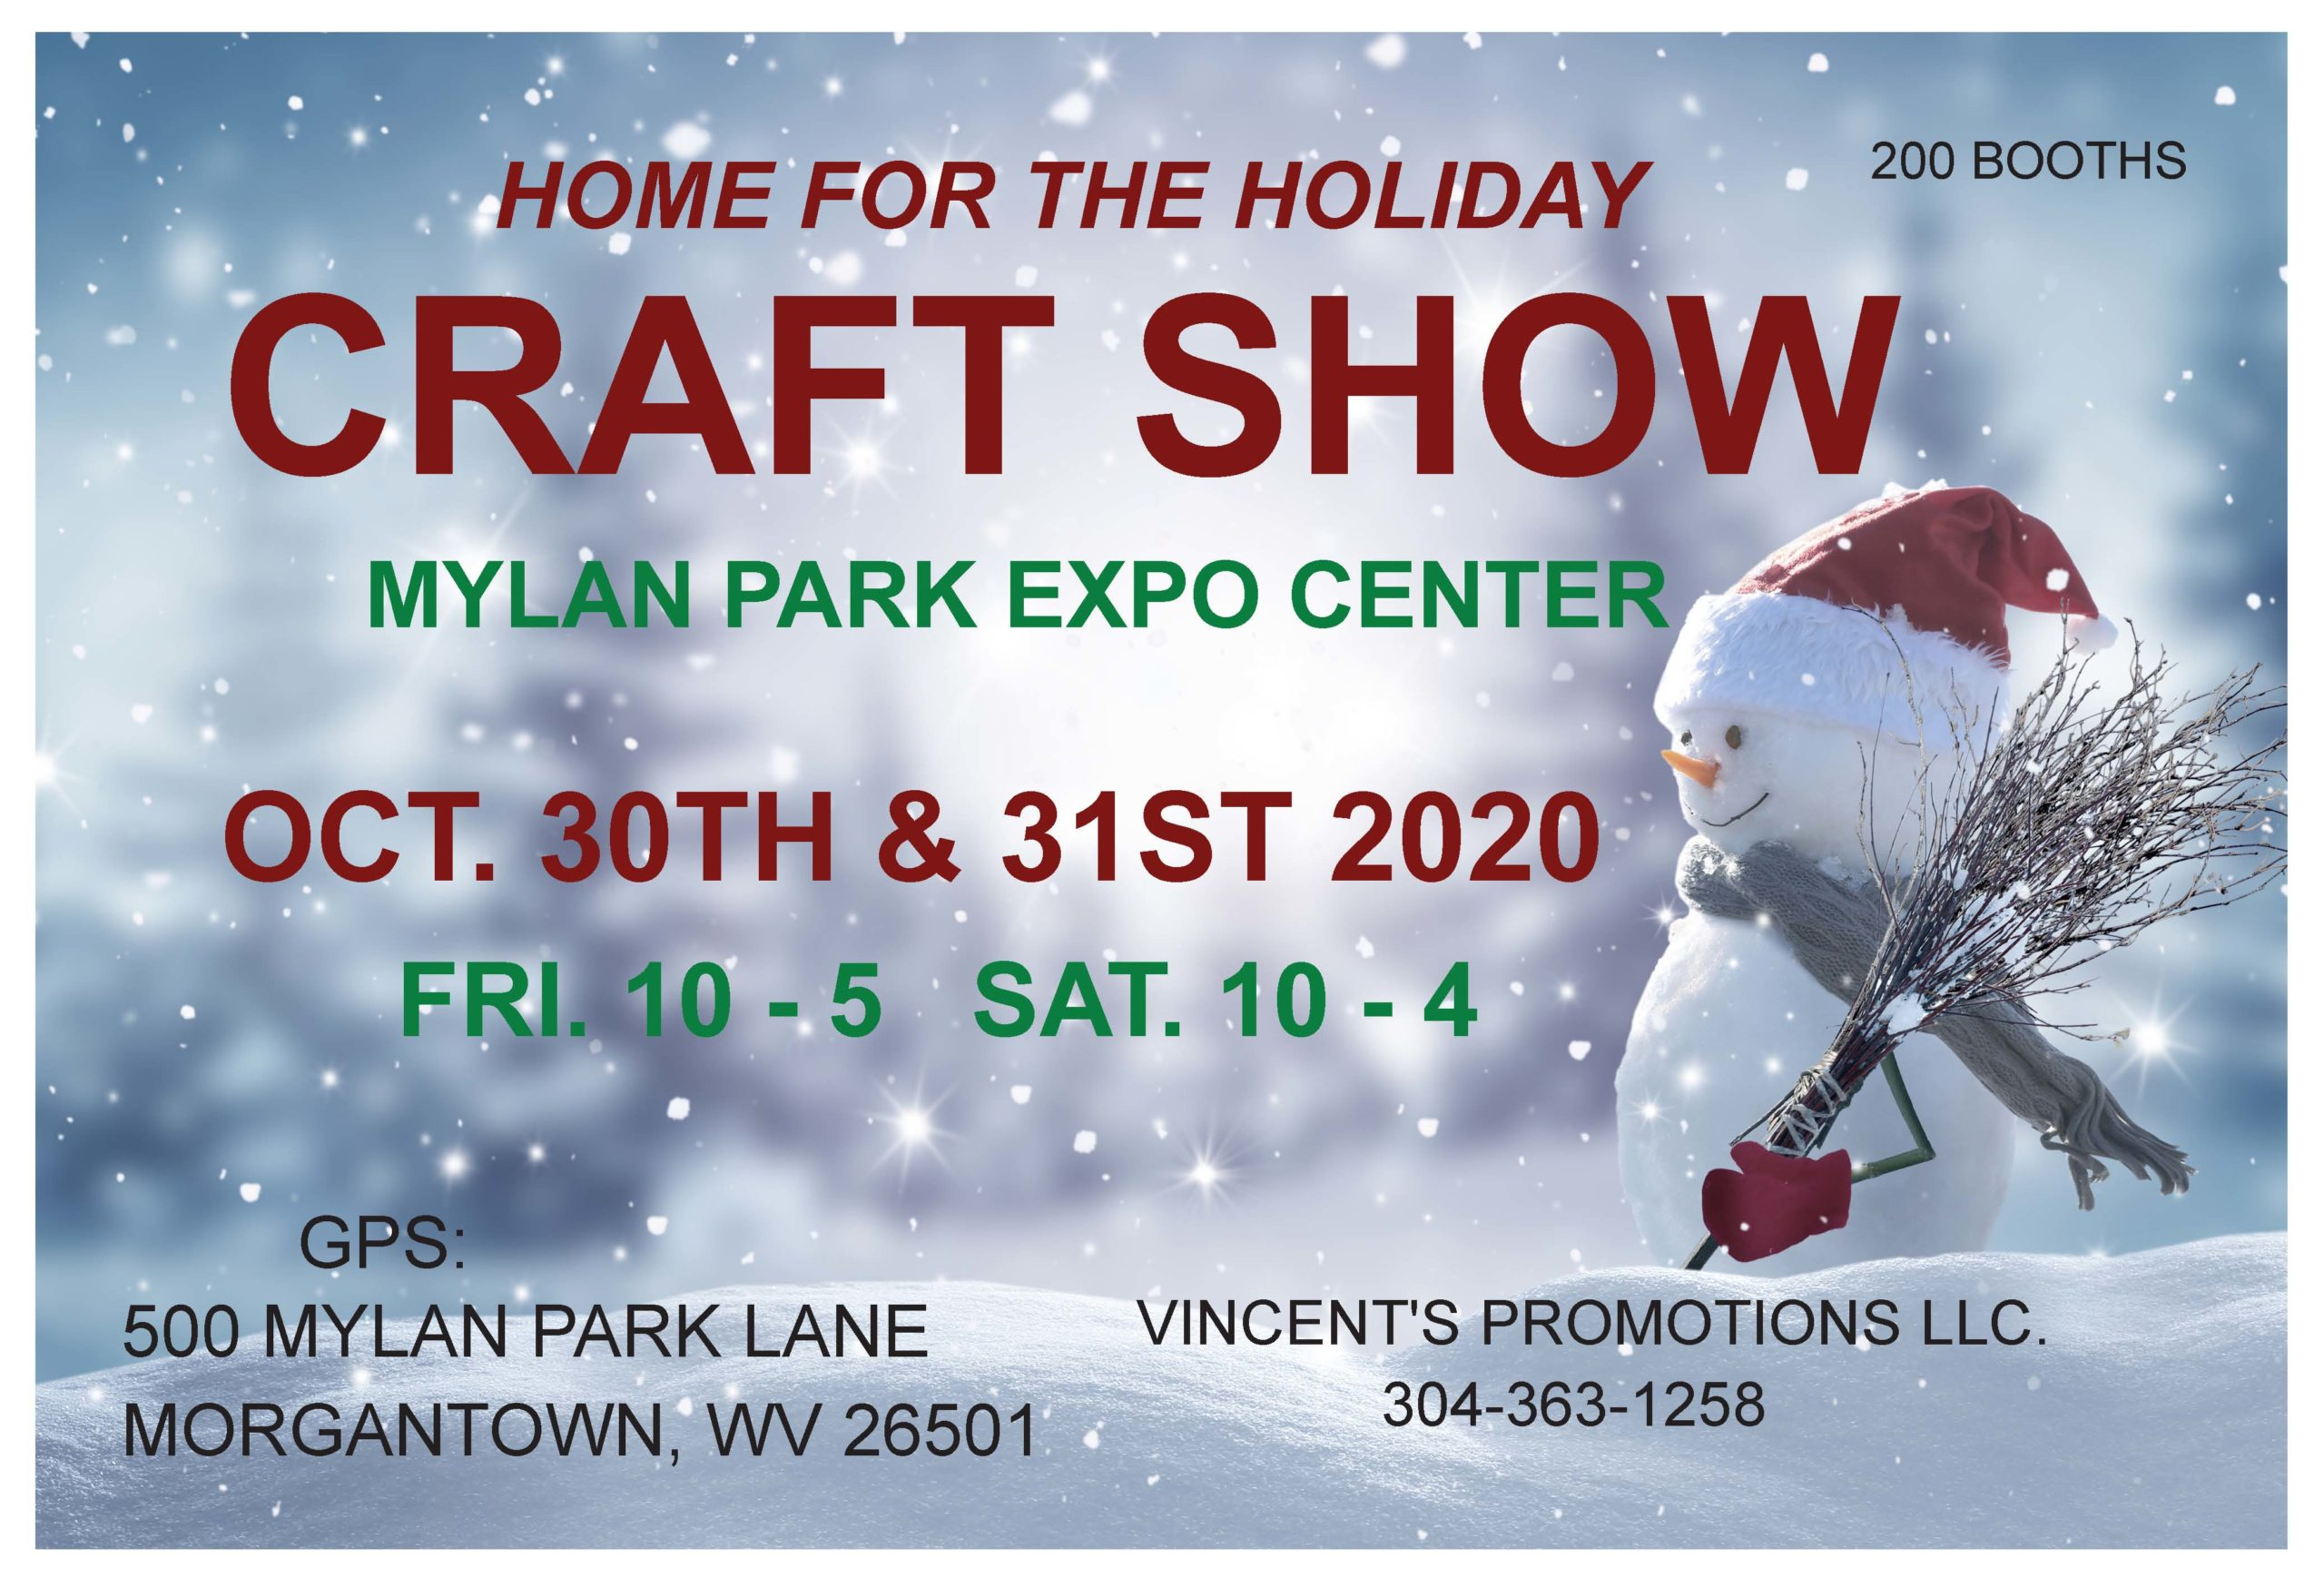 Christmas Craft Shows In Maryland 2020 Mylan Park Holiday Craft Show | VisitMountaineerCountry.com